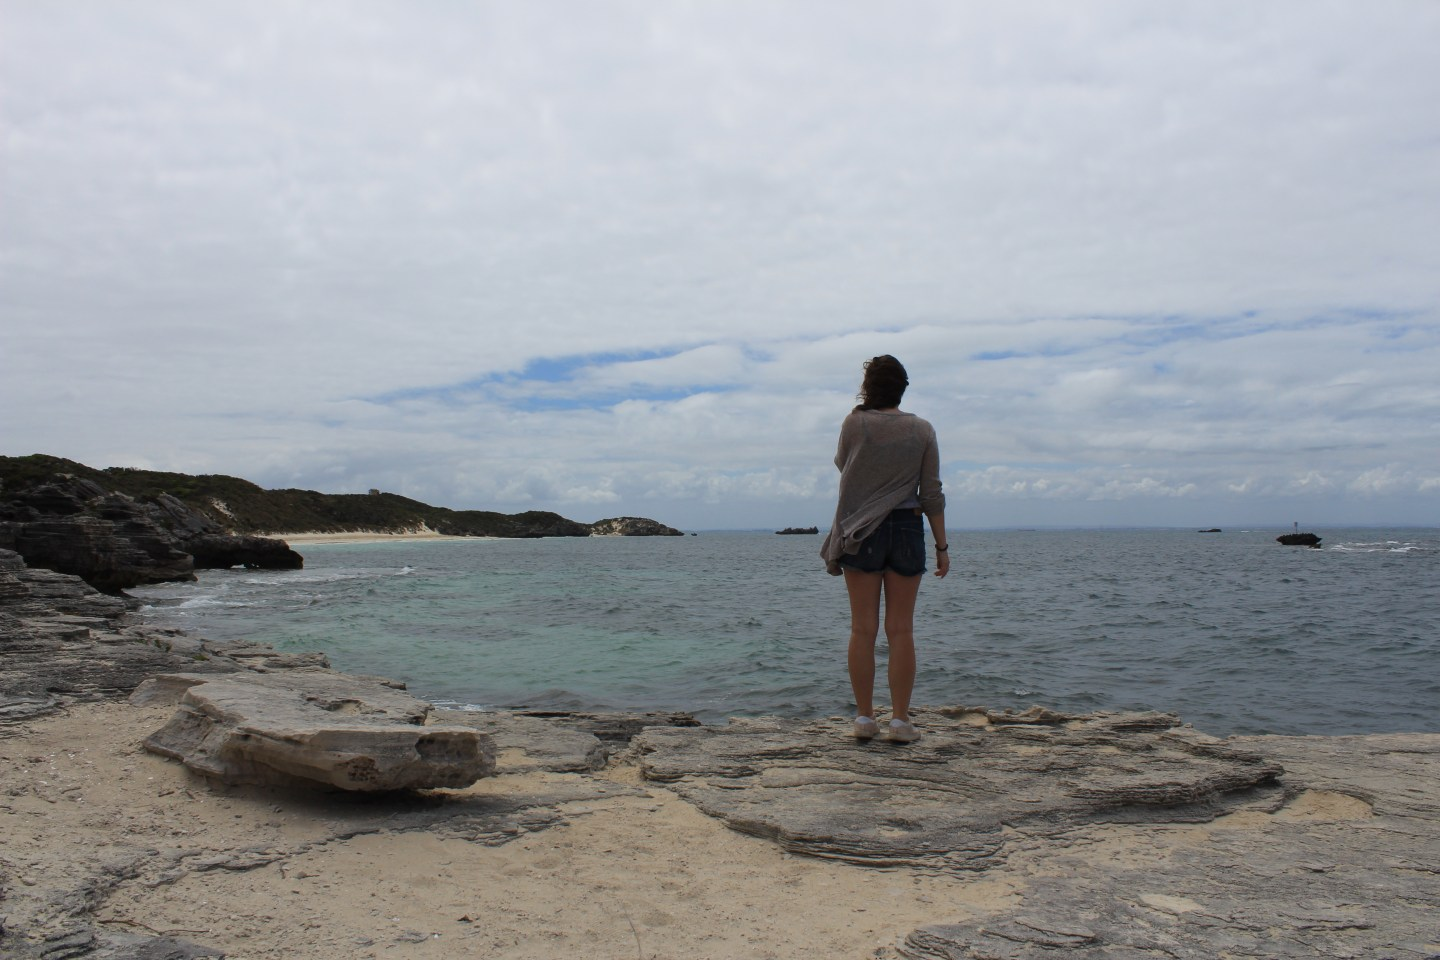 Girl stands on rocks overlooking the coast with overcast sky and sea